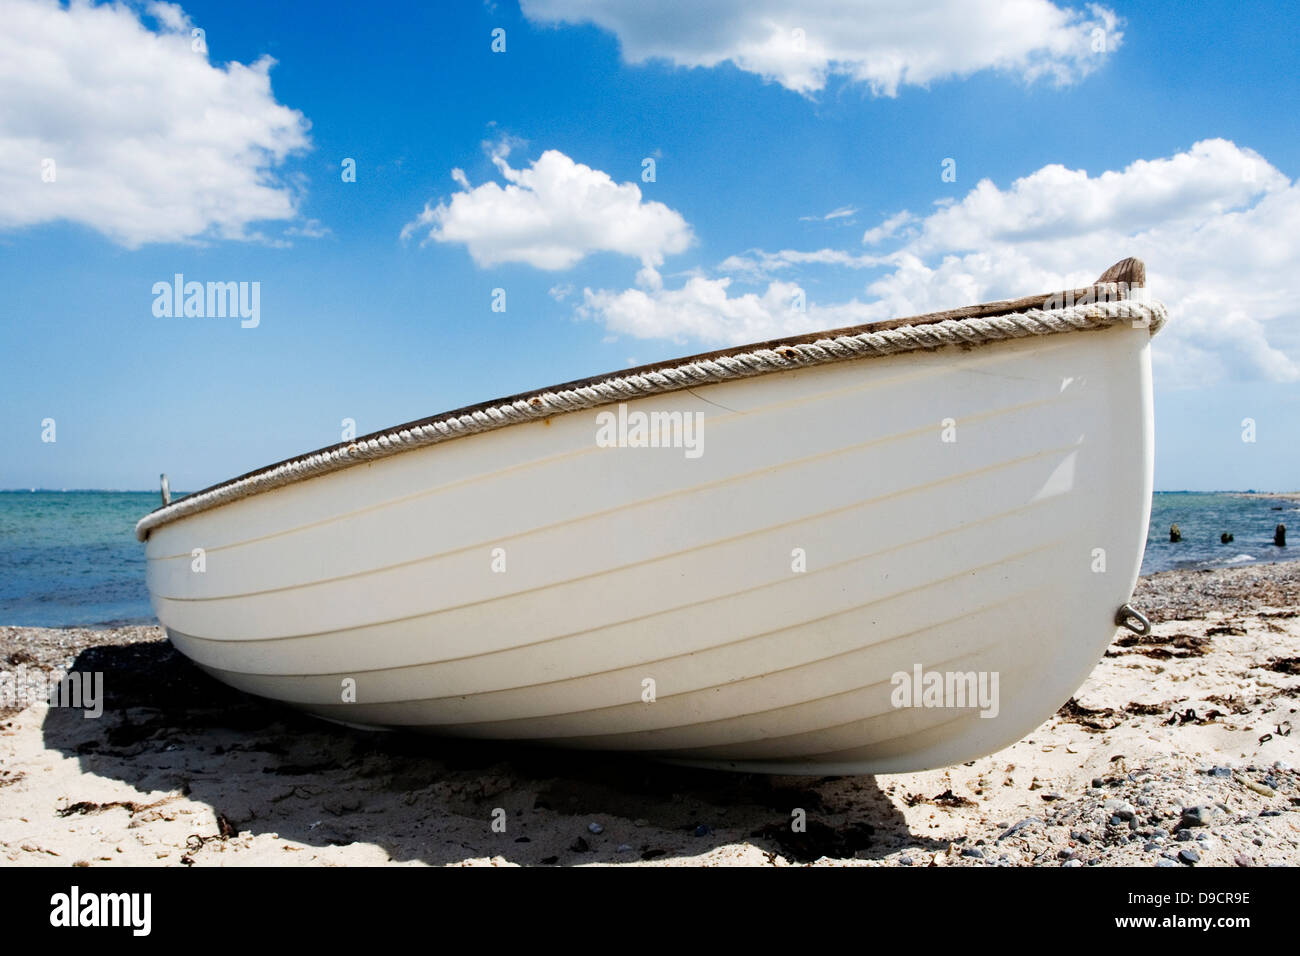 Oar boat on the Baltic beach - Stock Image